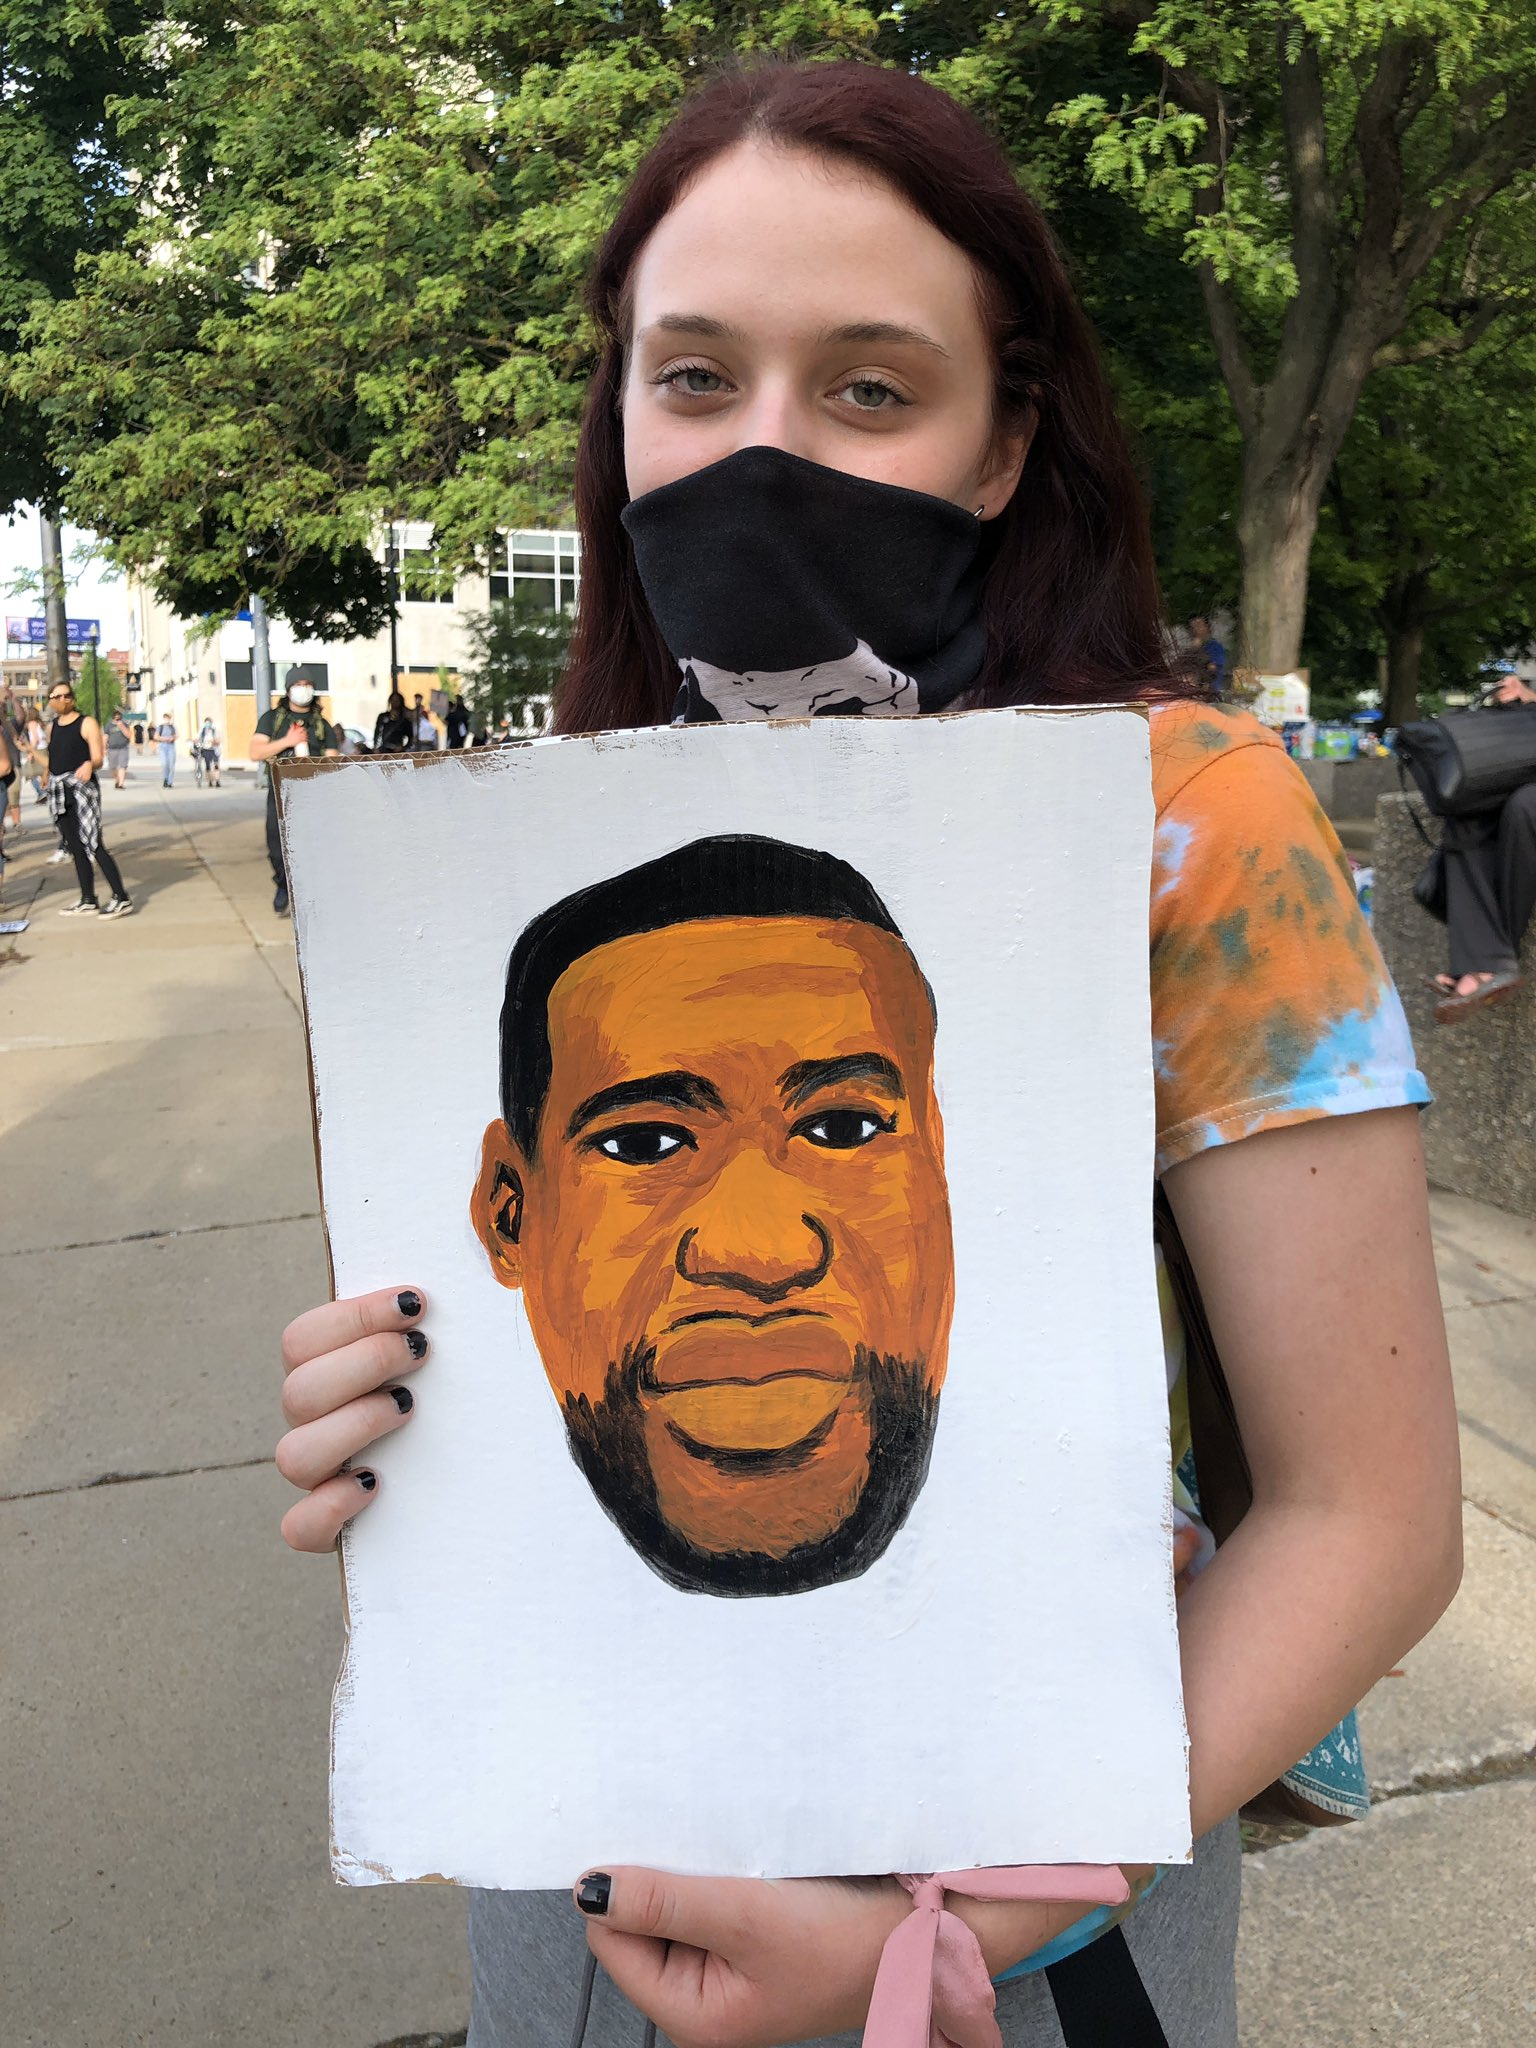 Jackie Burch ,23, holds a painting of George Floyd in Kalamazoo during the protest in front of the Kalamazoo County Courthouse June 3, 2020. (WWMT/Genevieve Grippo)